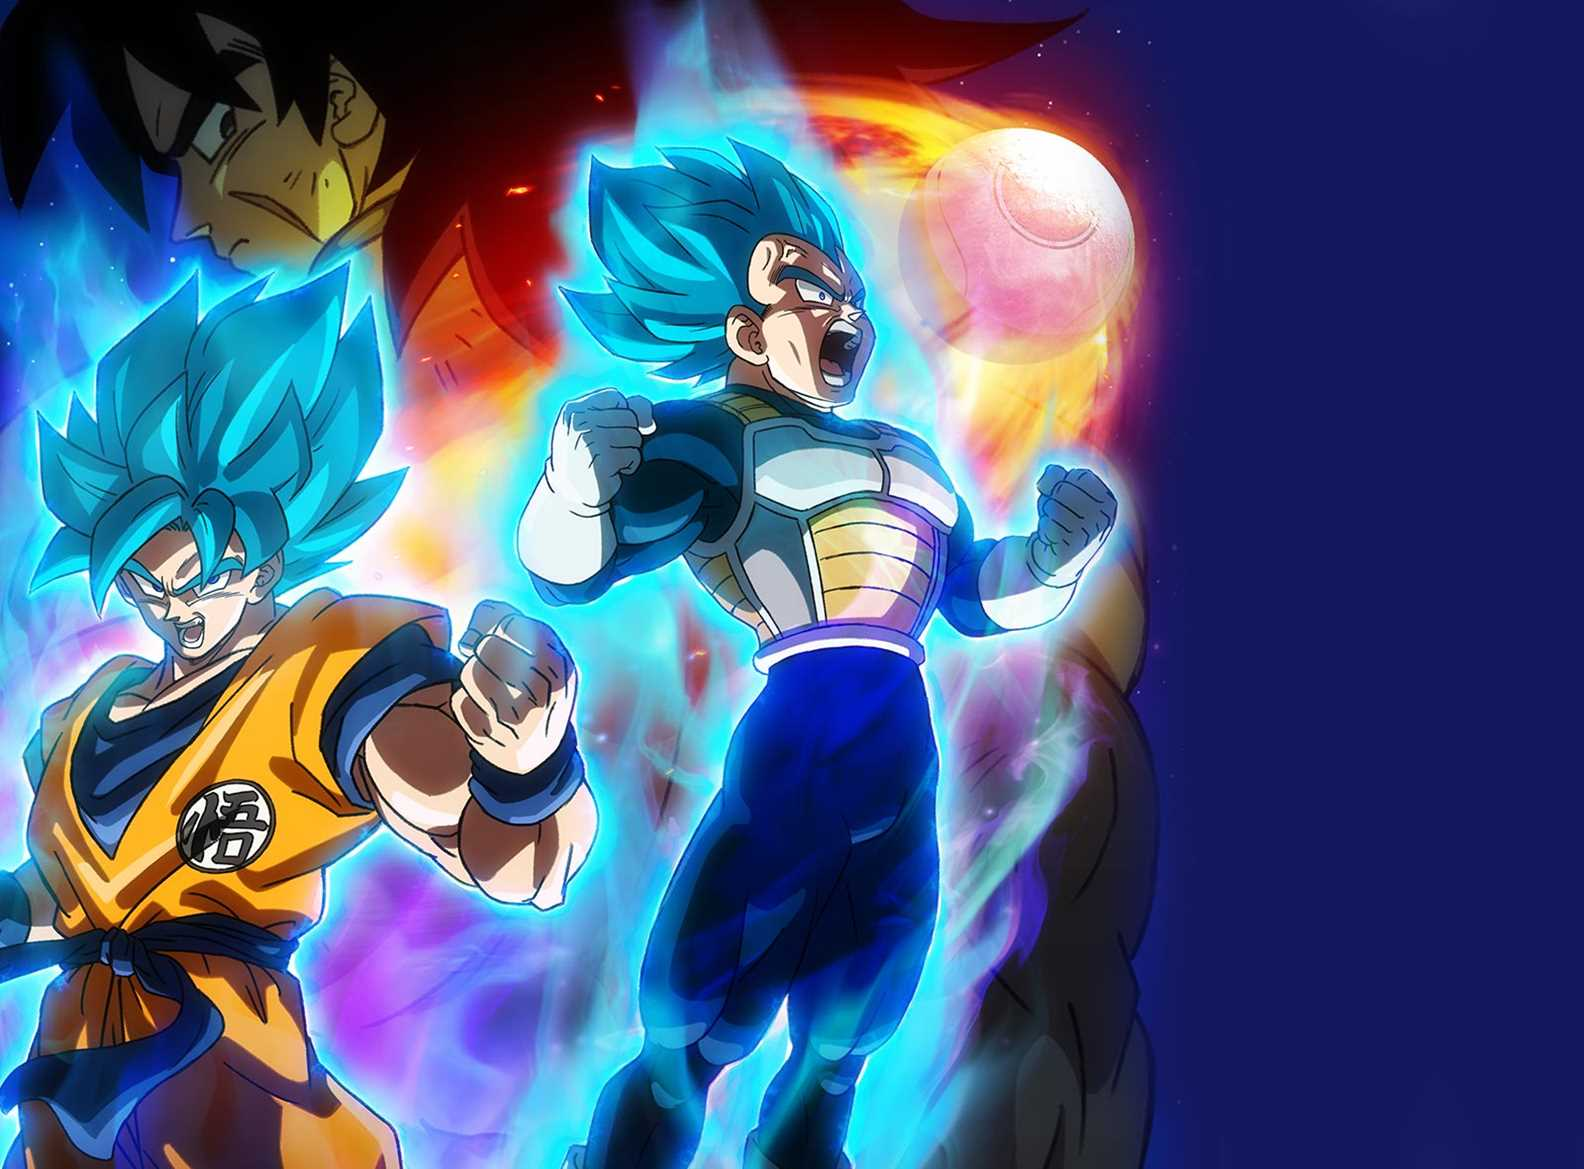 Watch Dragon Ball Super: Broly At Vue Cinema